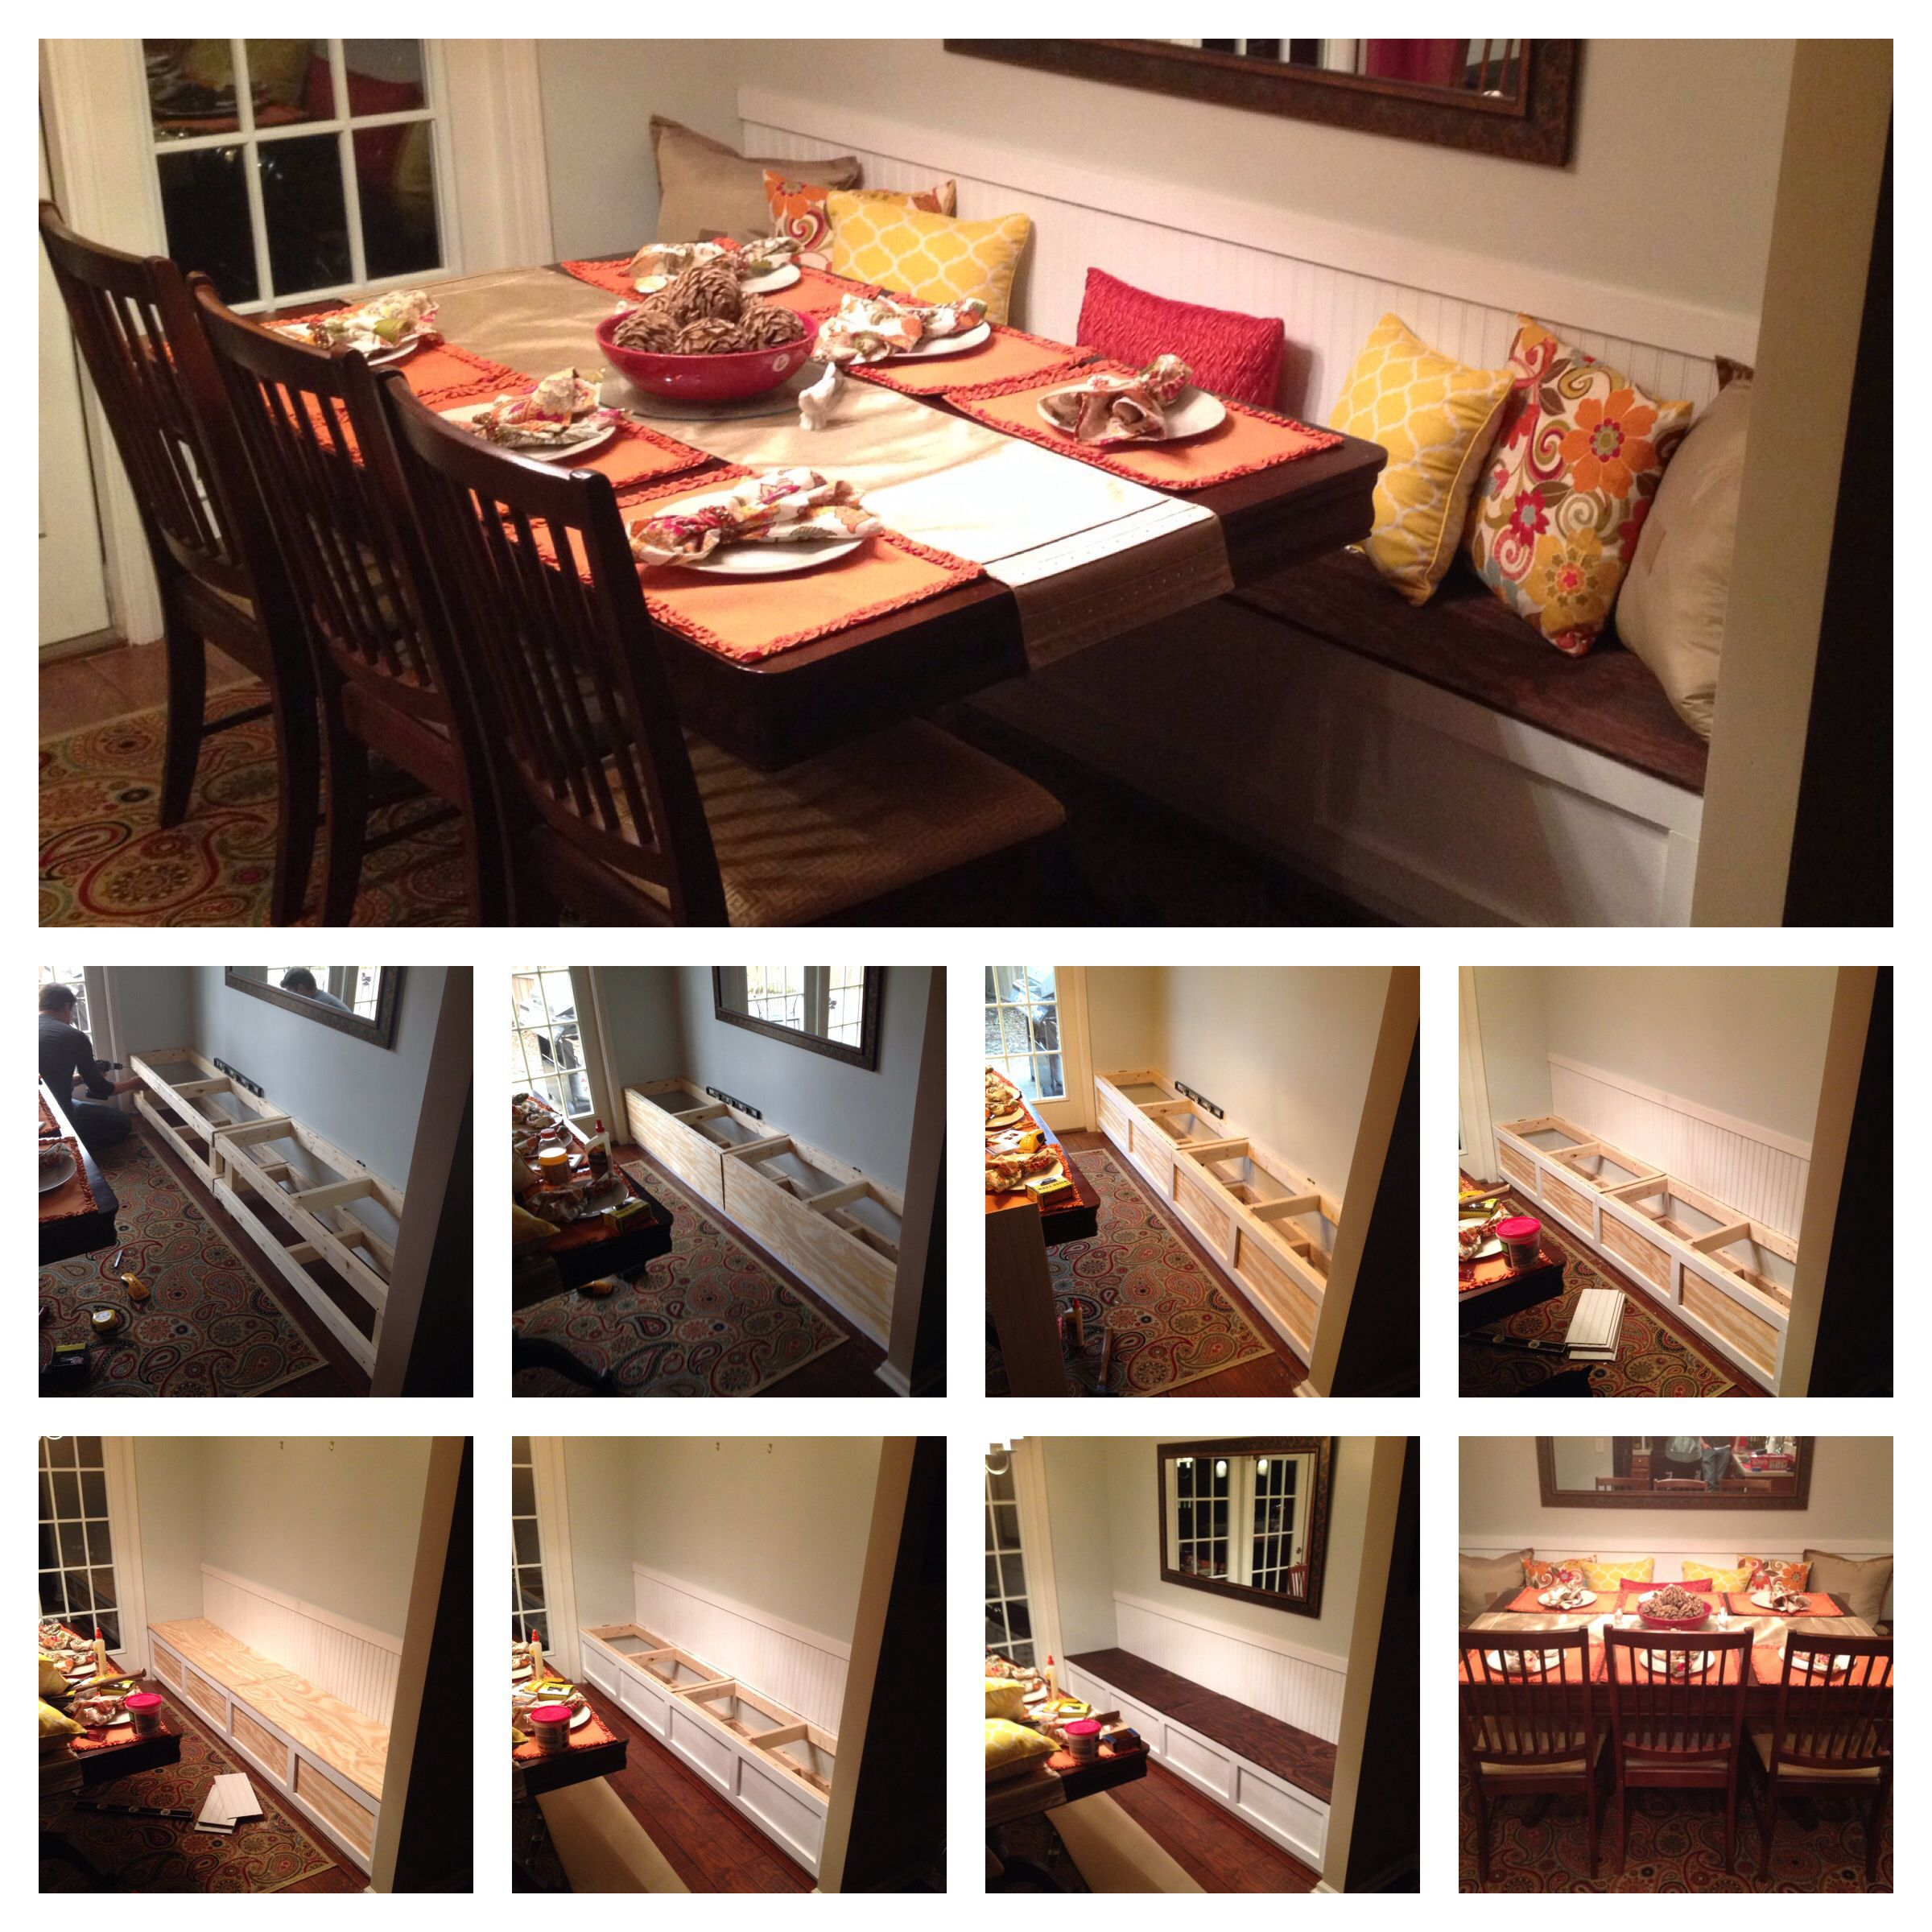 from cramped to comfortable small dining rooms small dining and diy breakfast nook breakfast banquette small dining room ideas total cost 100